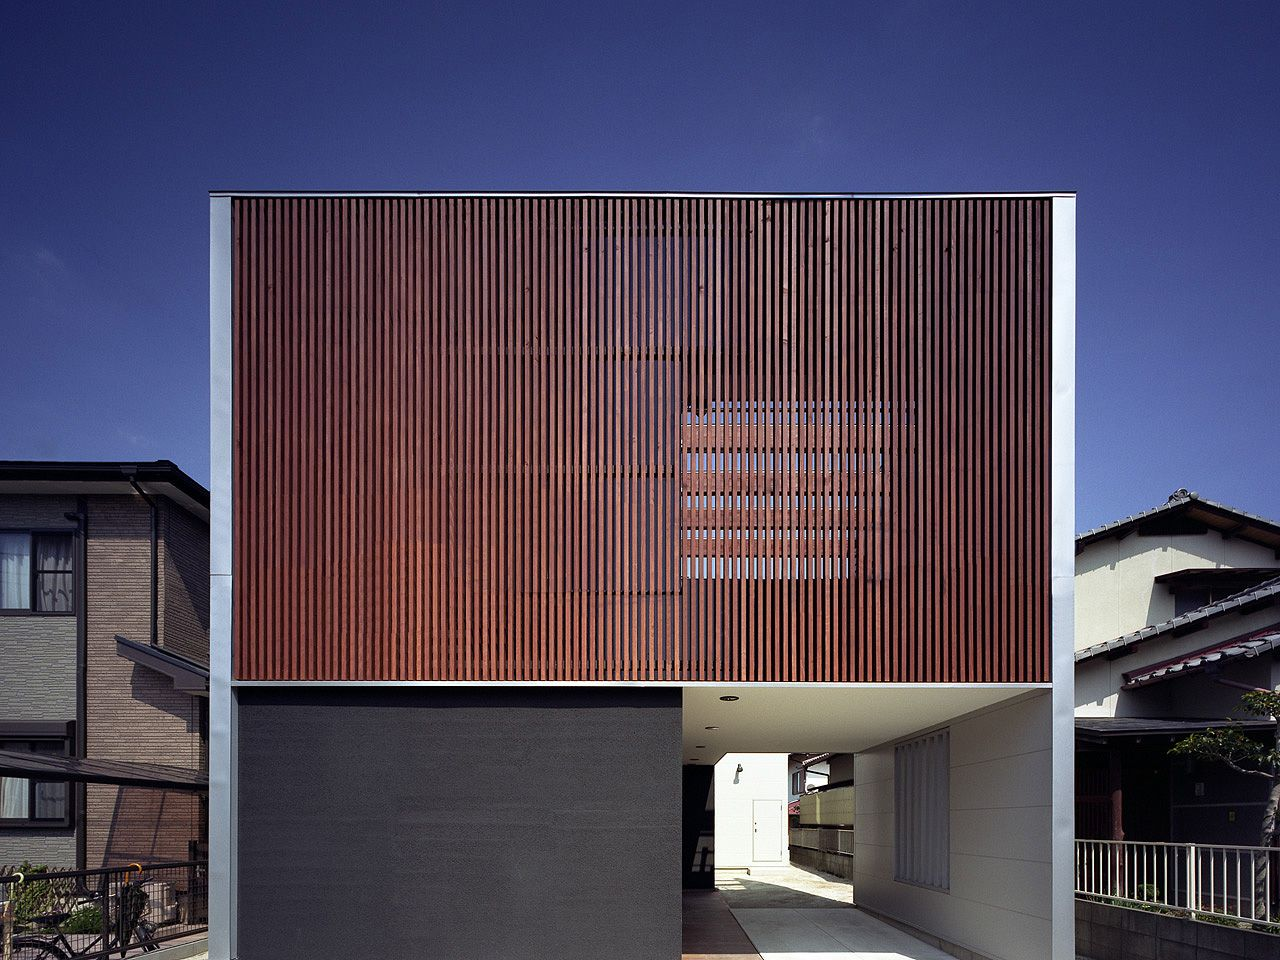 H h japanese house design pinterest architektur haus and holzfassade - Moderne architektur japan ...